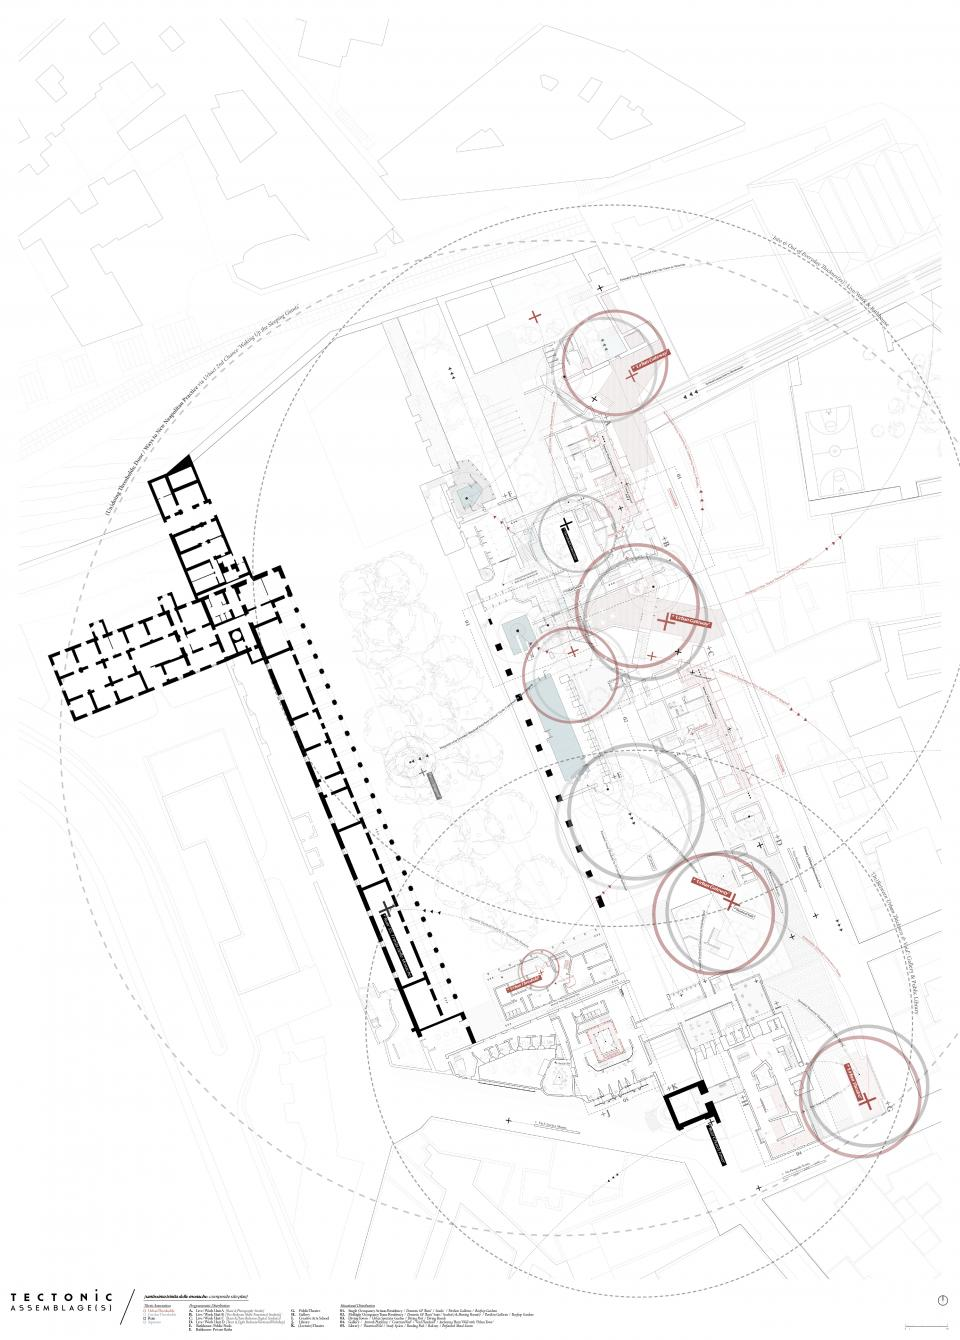 Katy Sidwell_Architecture - MArch_2020_(Un)Doing Thresholds; Door _ Ways to New Neapolitan Practice(s)_3.jpg